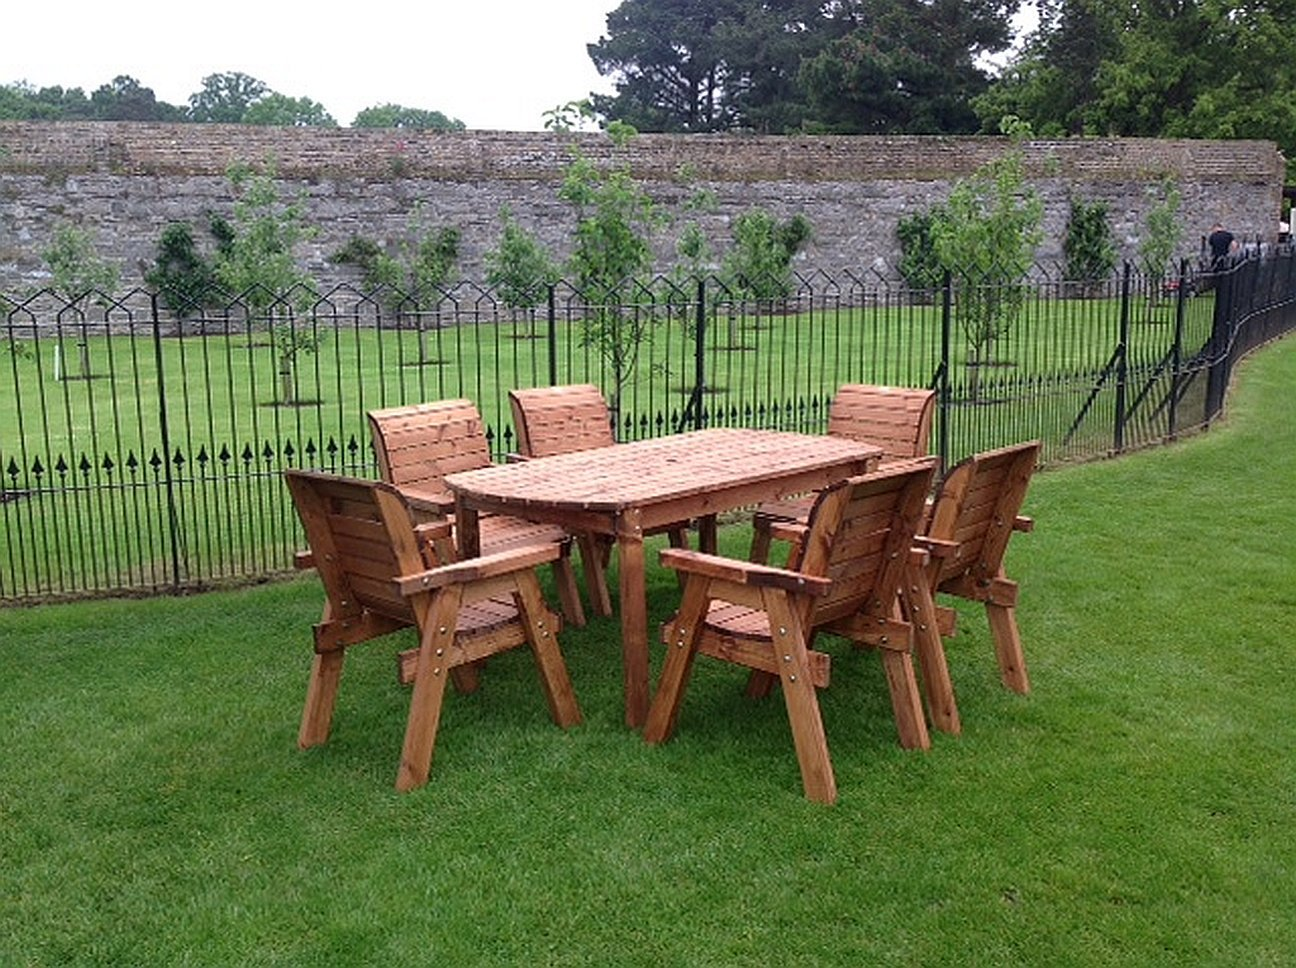 hgg wooden garden table and 6 chairs dining set outdoor patio solid wood garden furniture amazoncouk garden outdoors